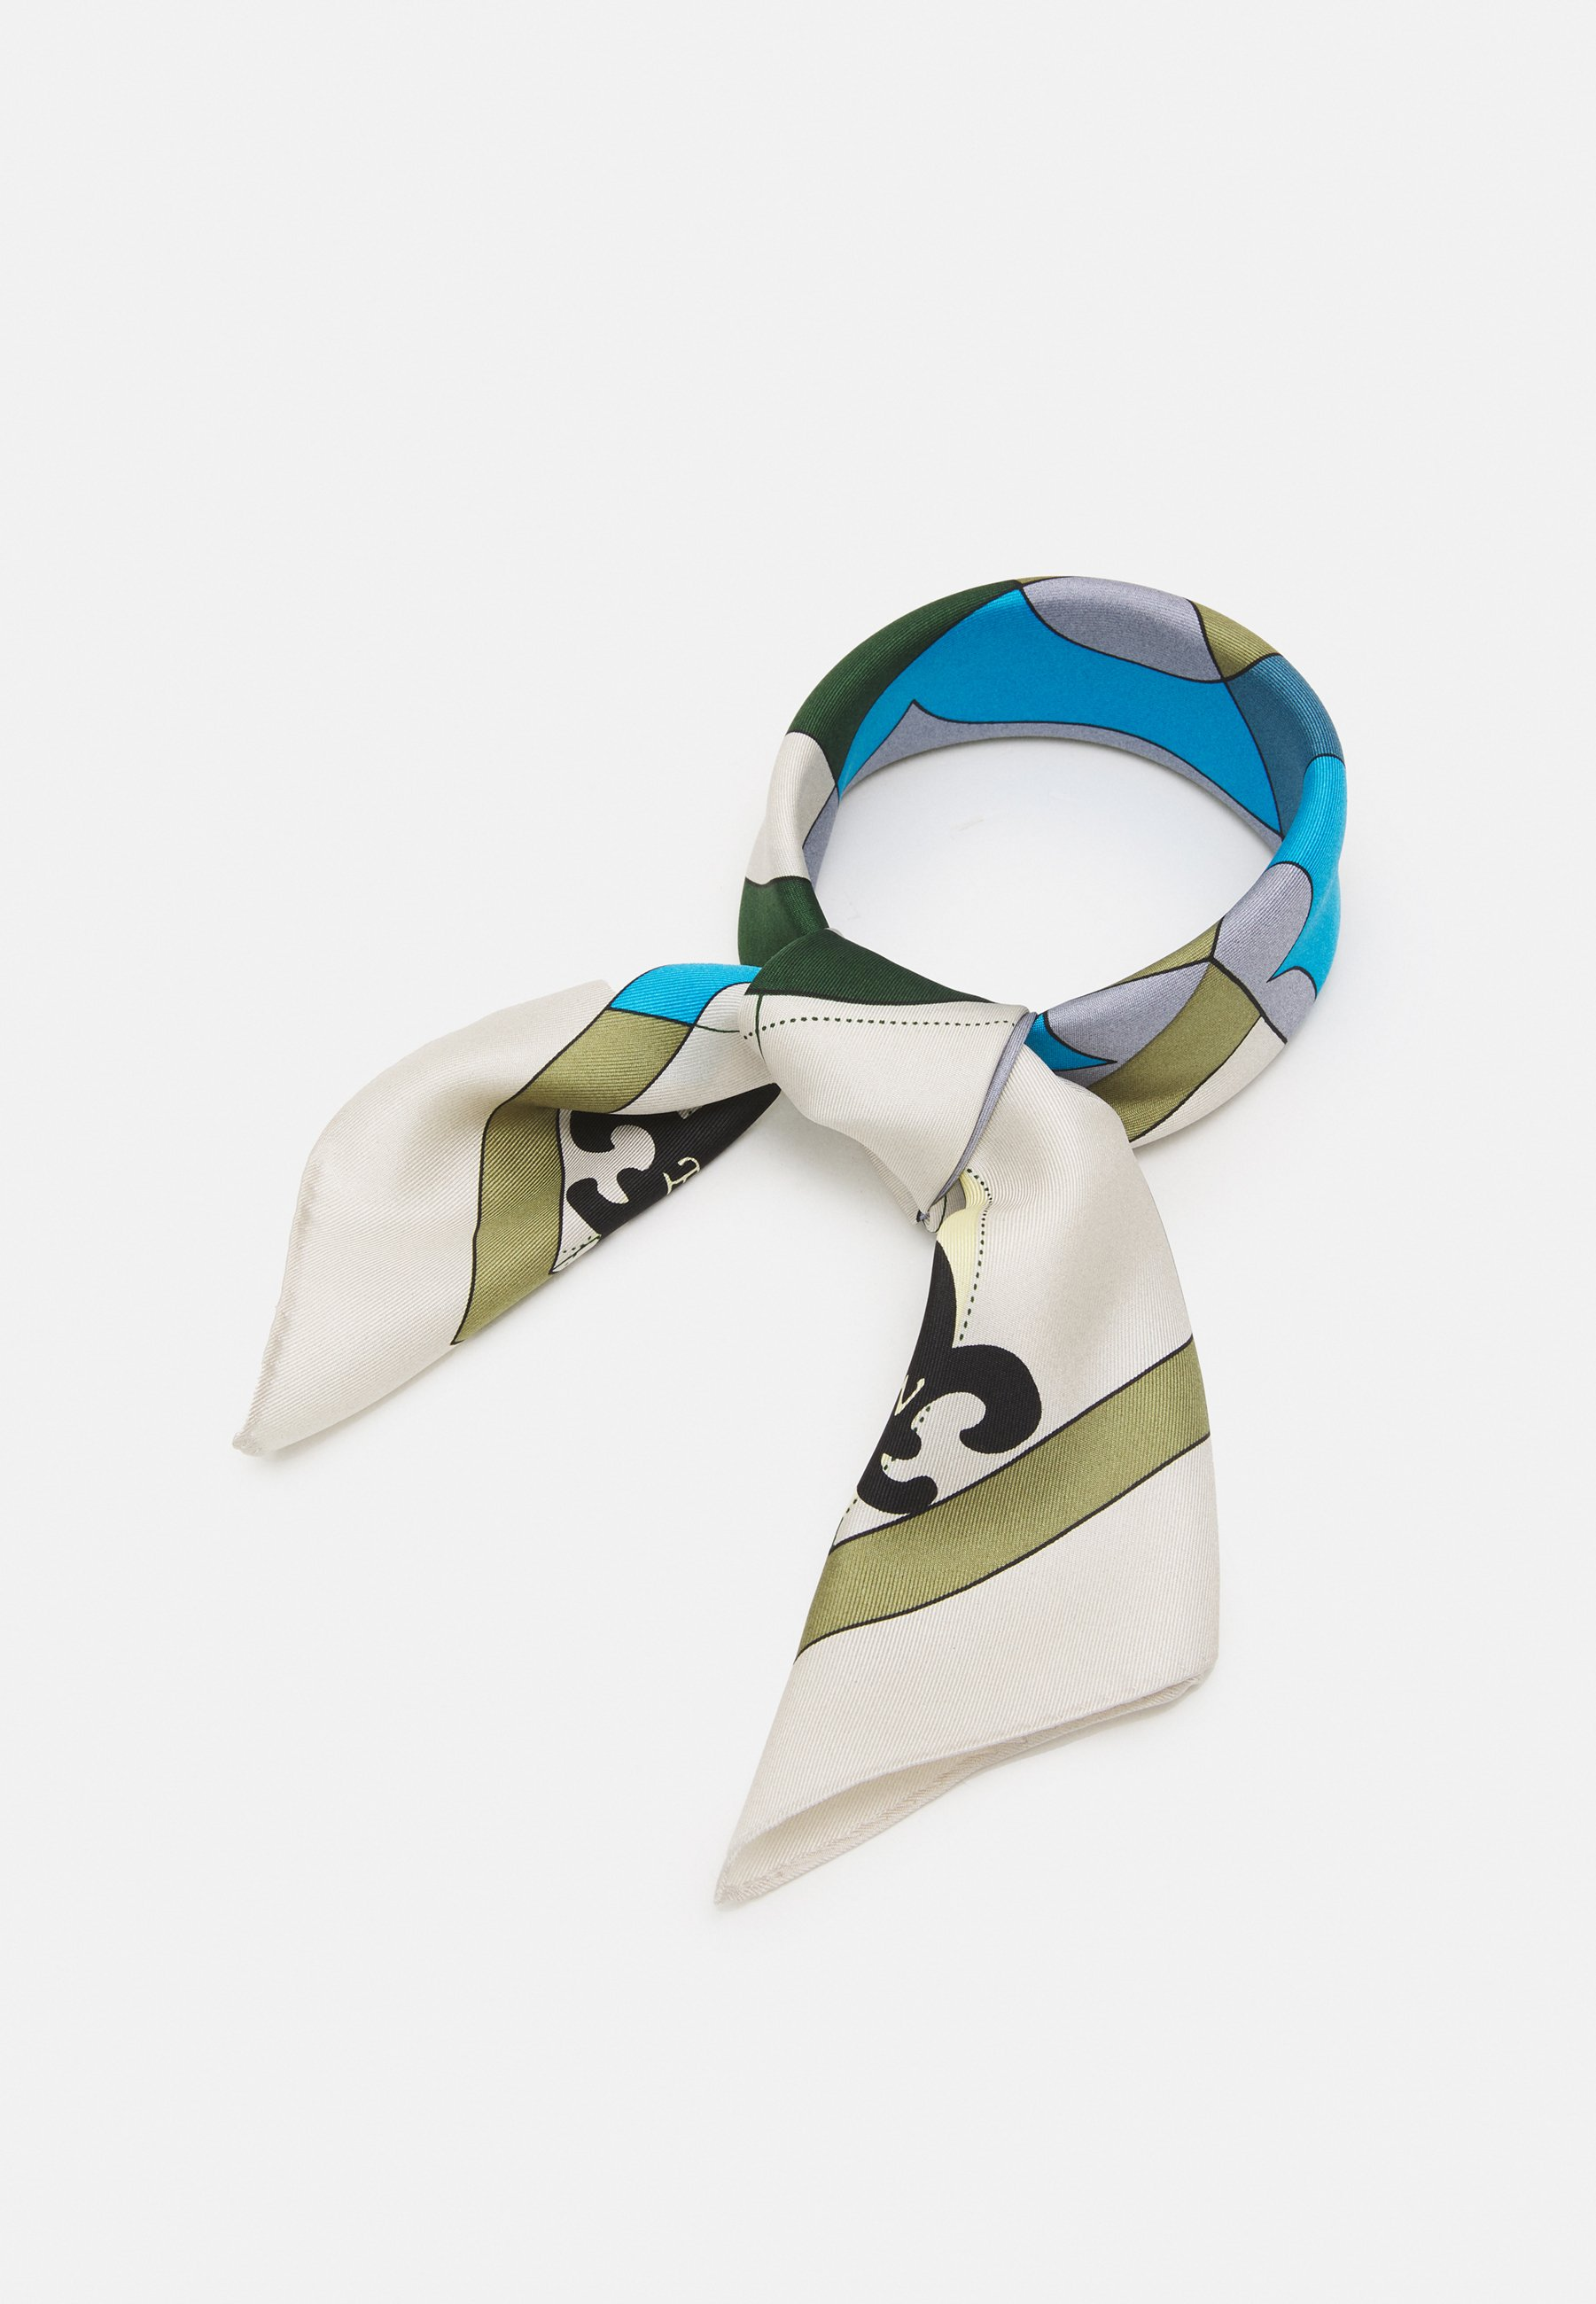 Femme COMPASS NECKERCHIEF WITH CHARMS - Foulard